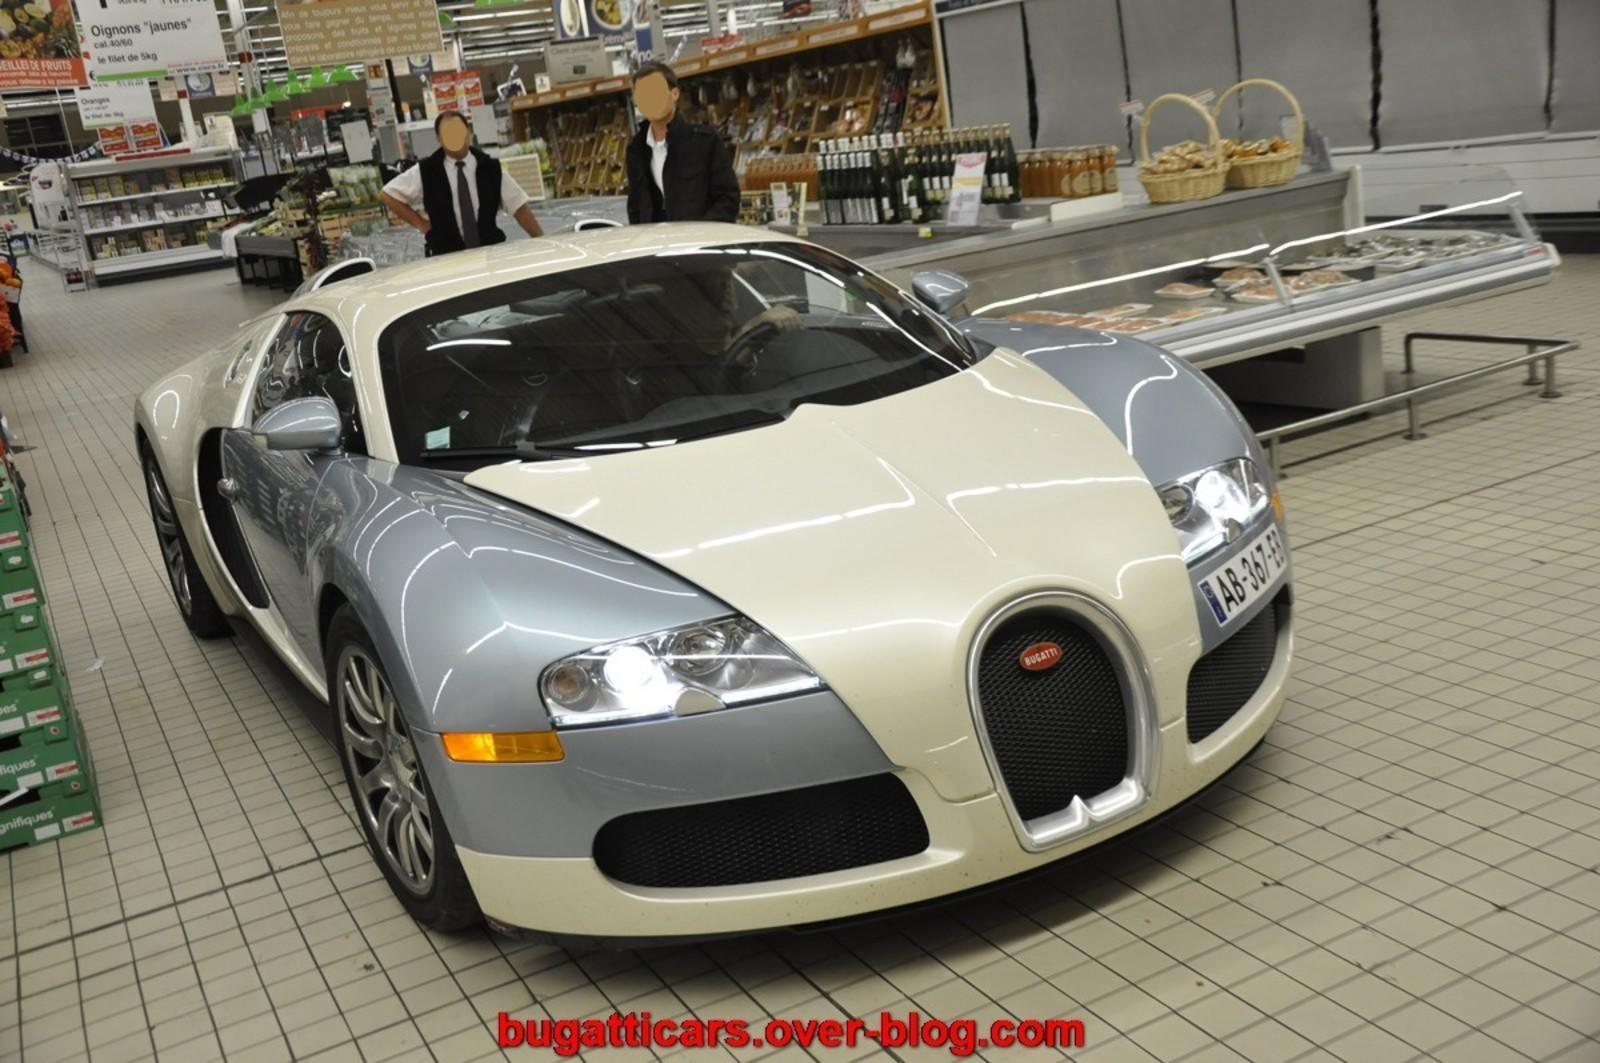 Top Fastest Cars >> Bugatti Veyron On Display Inside A Supermarket! News - Top Speed